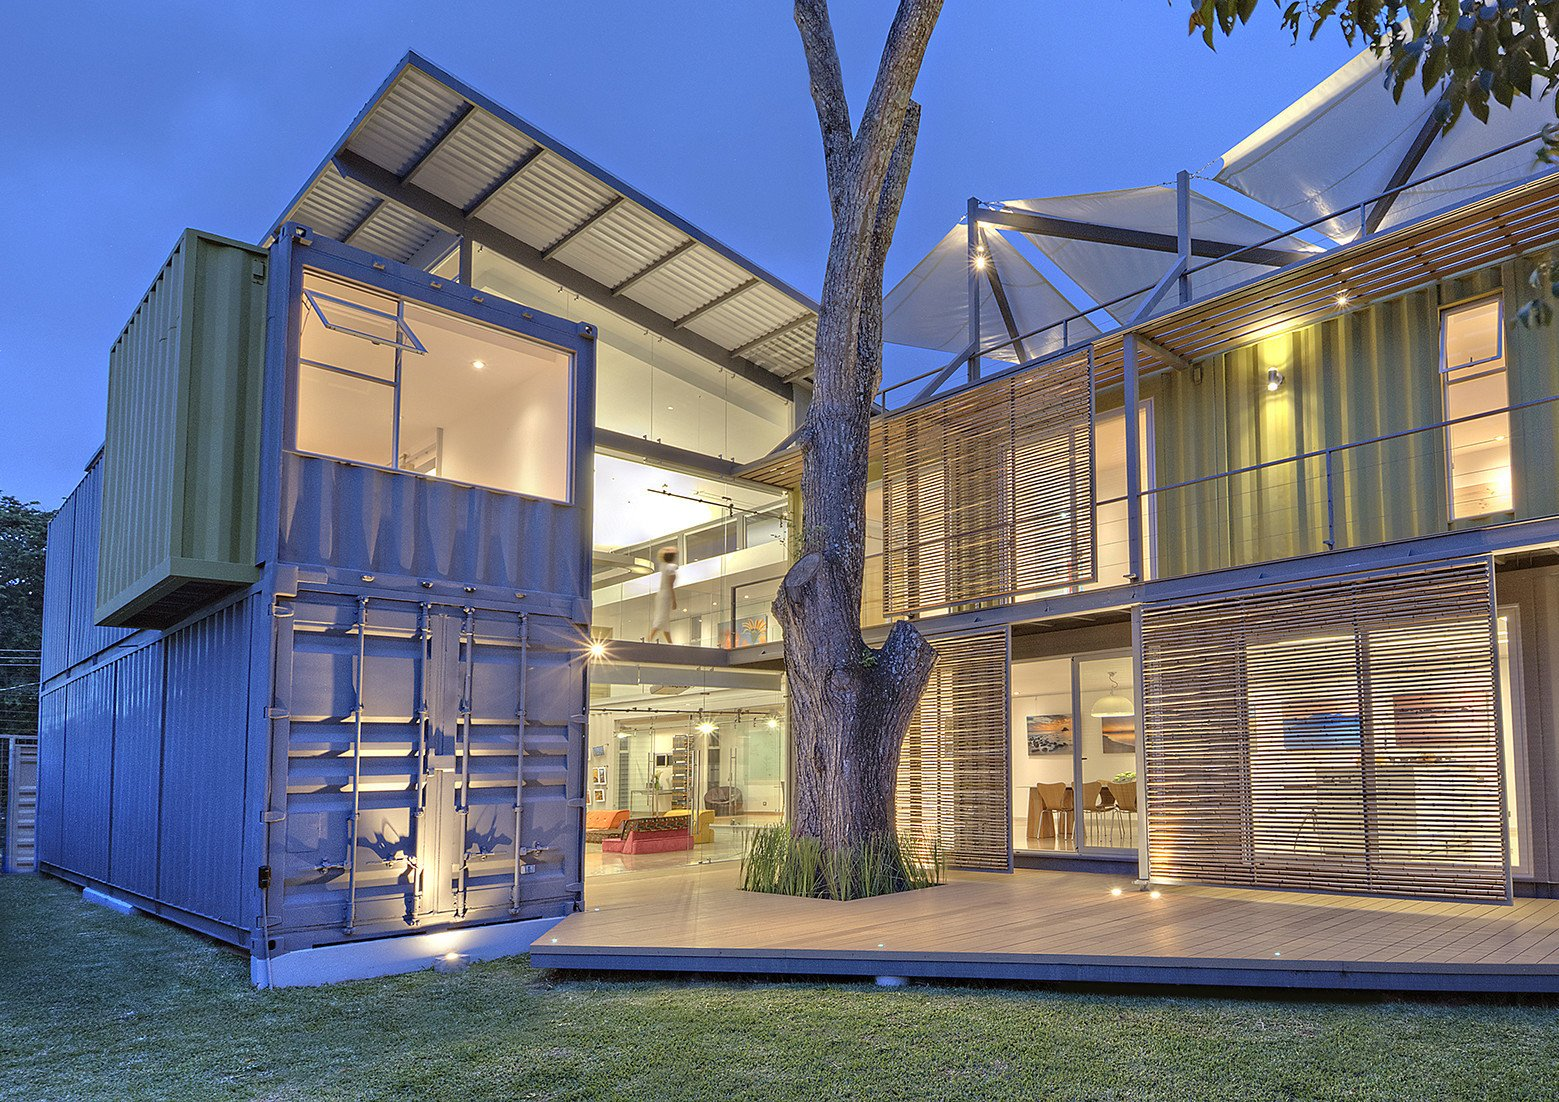 Articles about who knew relaxed tropical retreat could be made shipping containers on Dwell.com